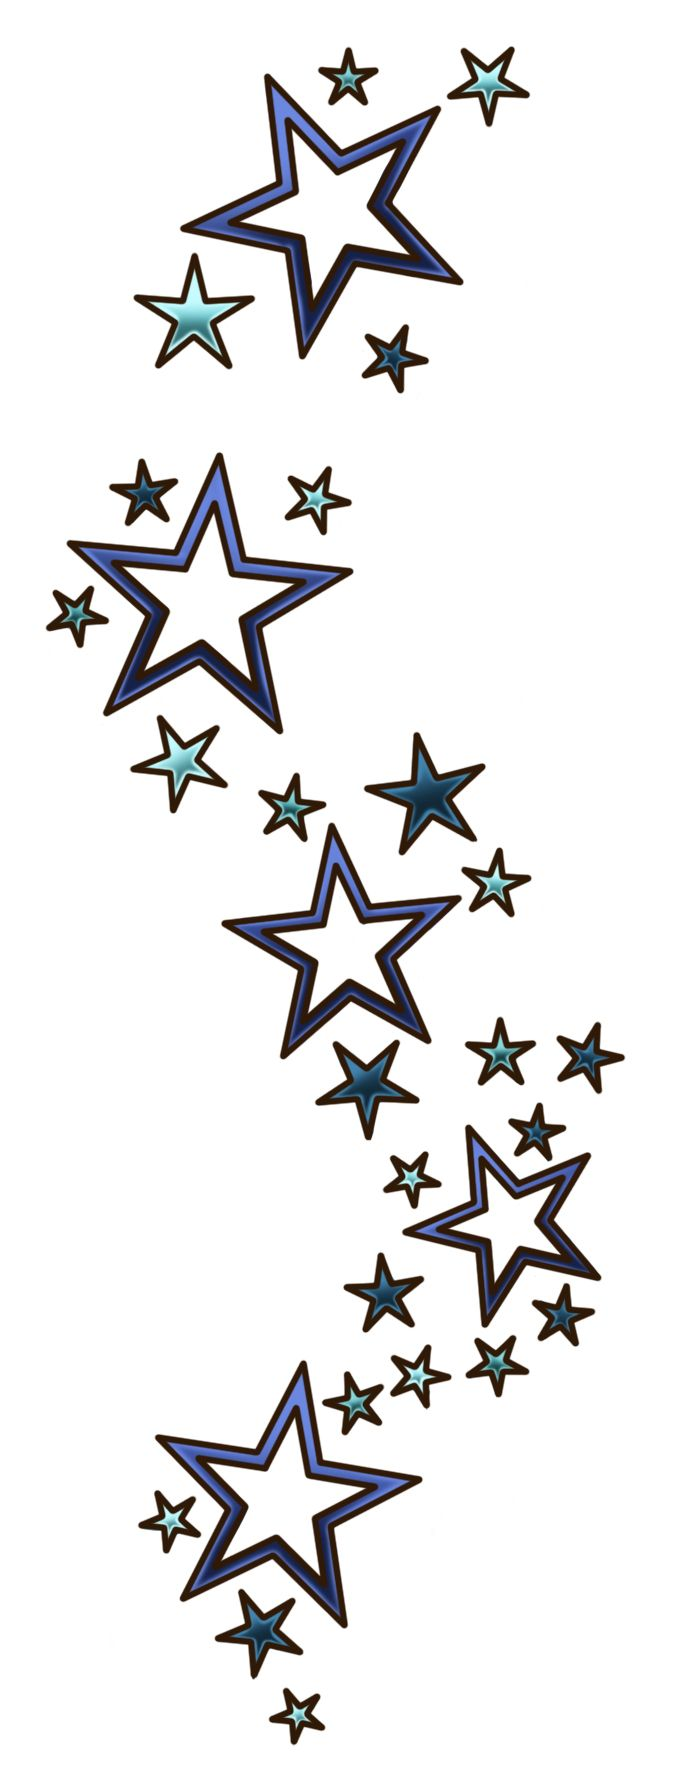 Star tattoo idea